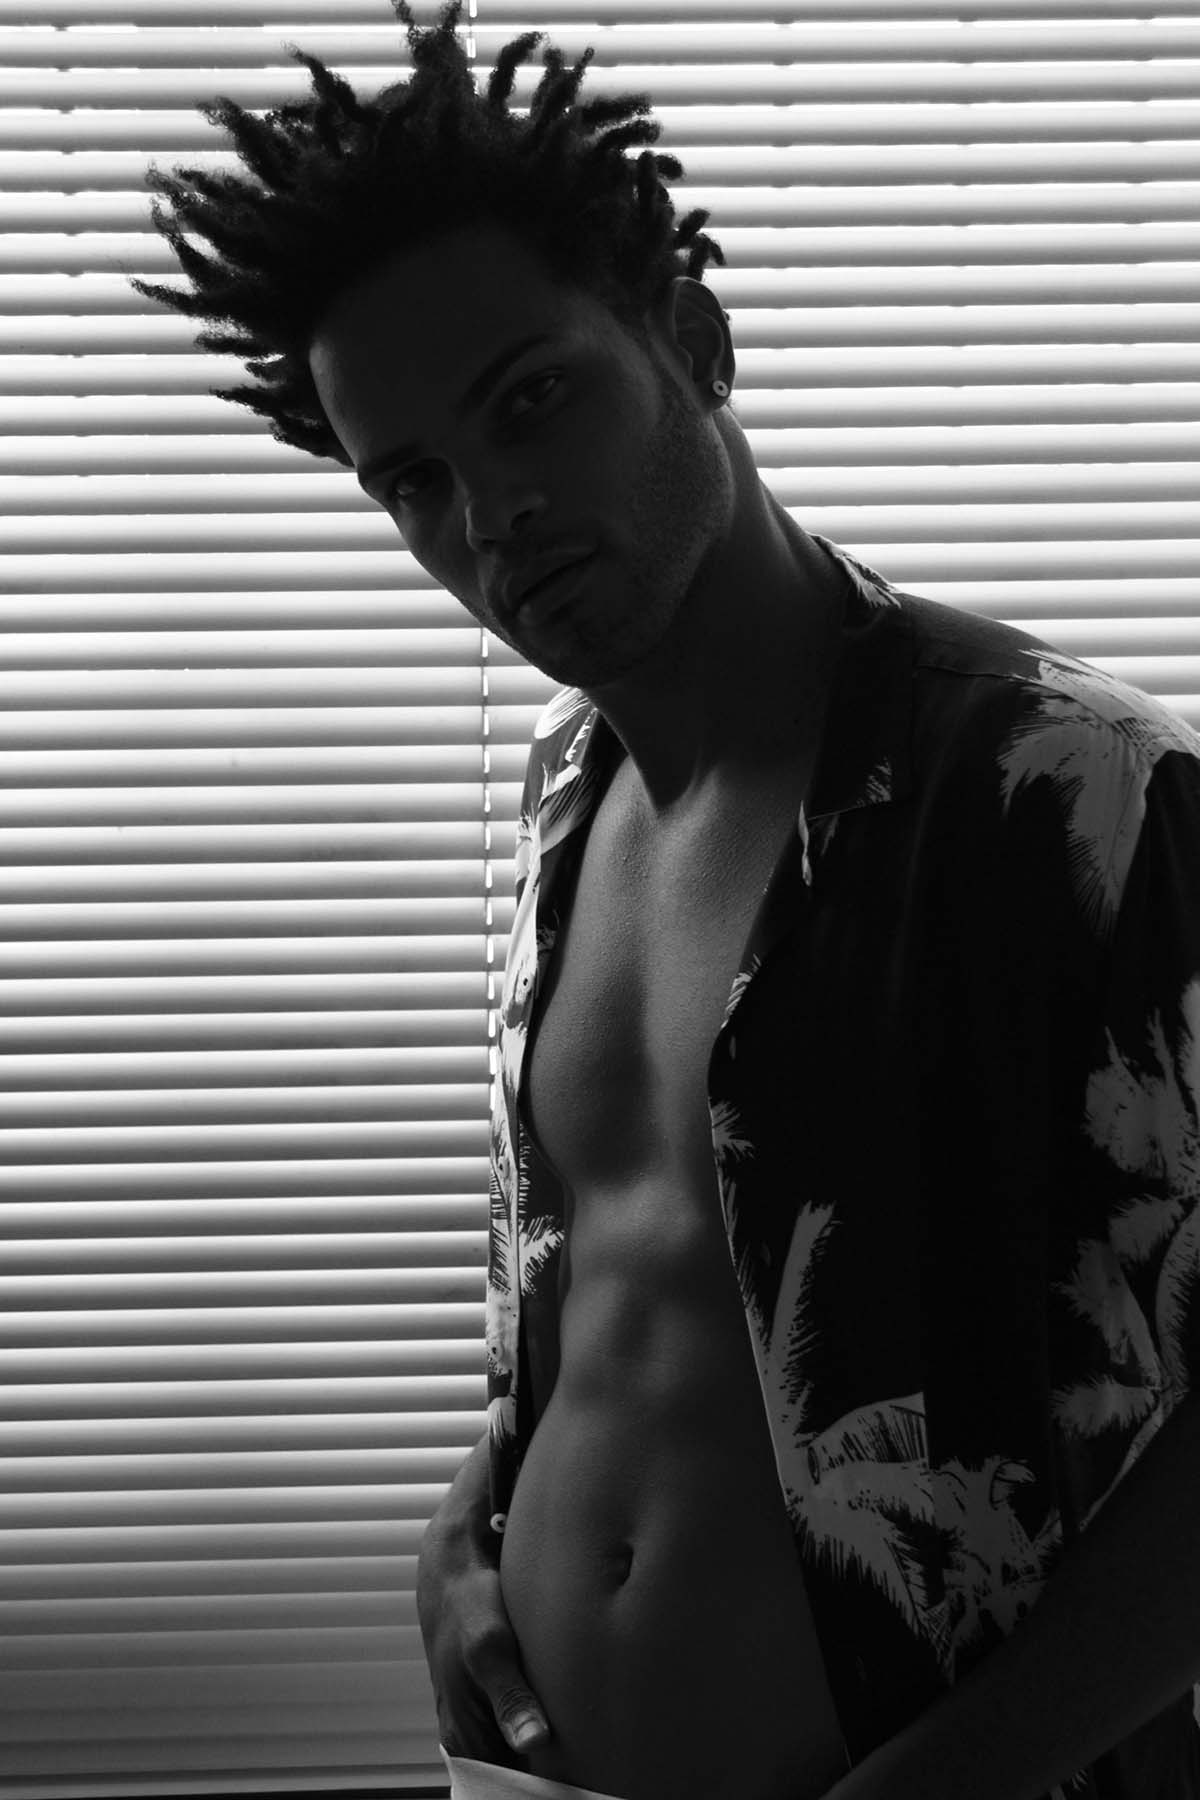 Hugo Cortes by Filipe Galgani for Brazilian Male Model